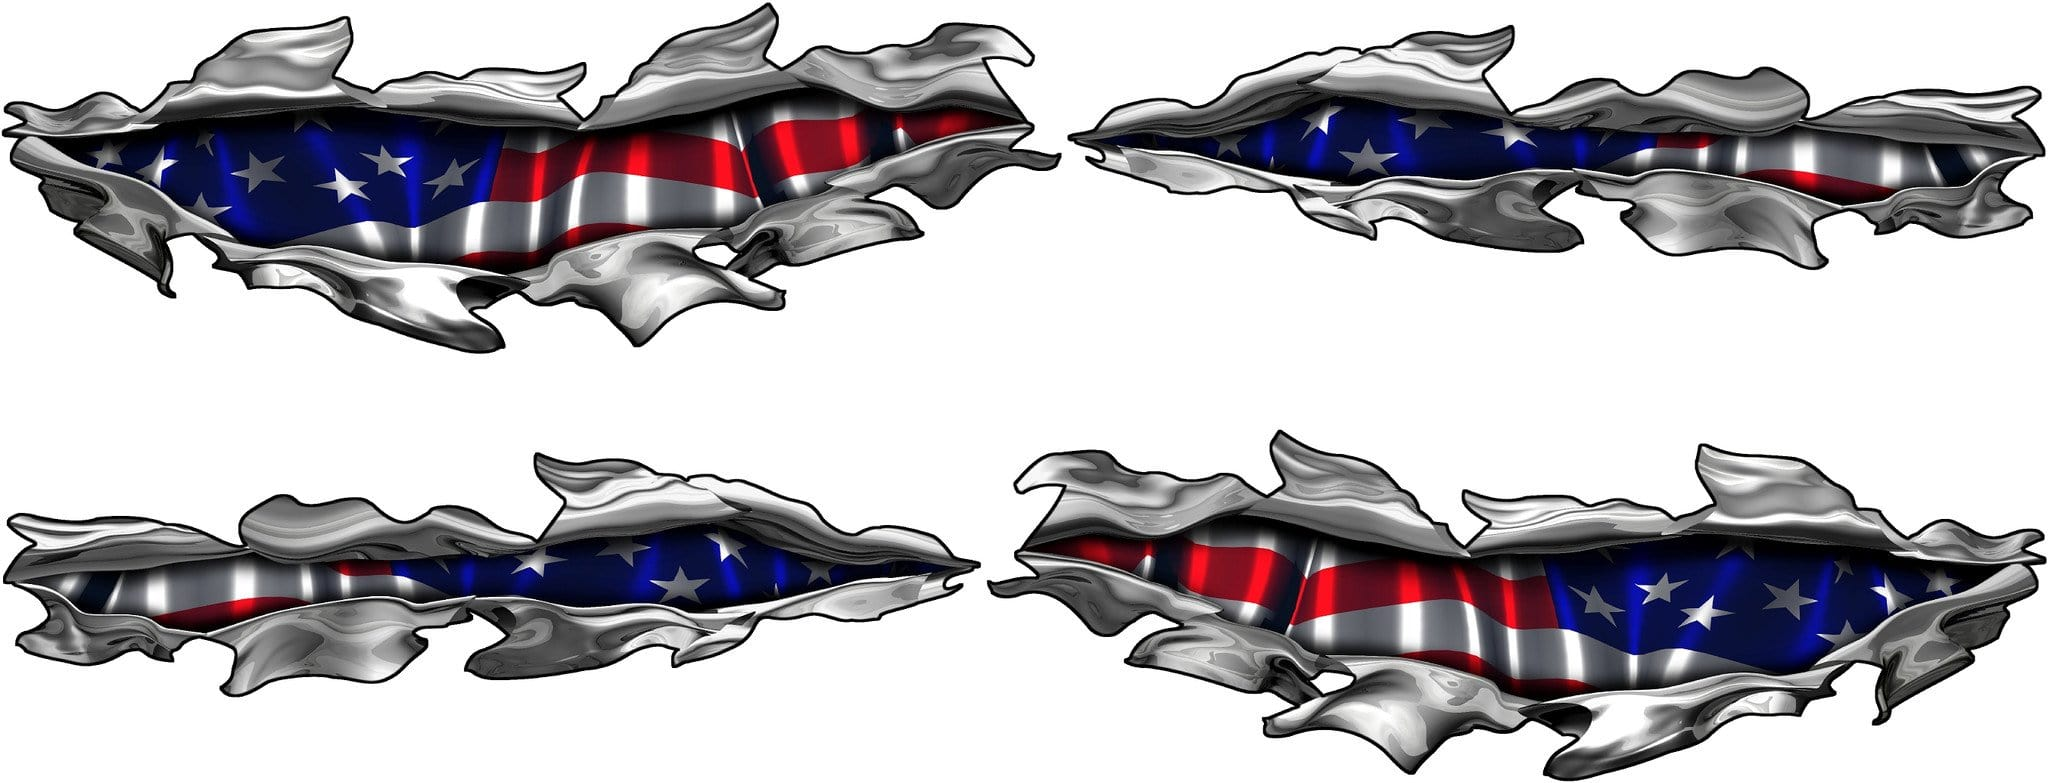 American Flag Truck Decals Boat Usa Flag Graphics